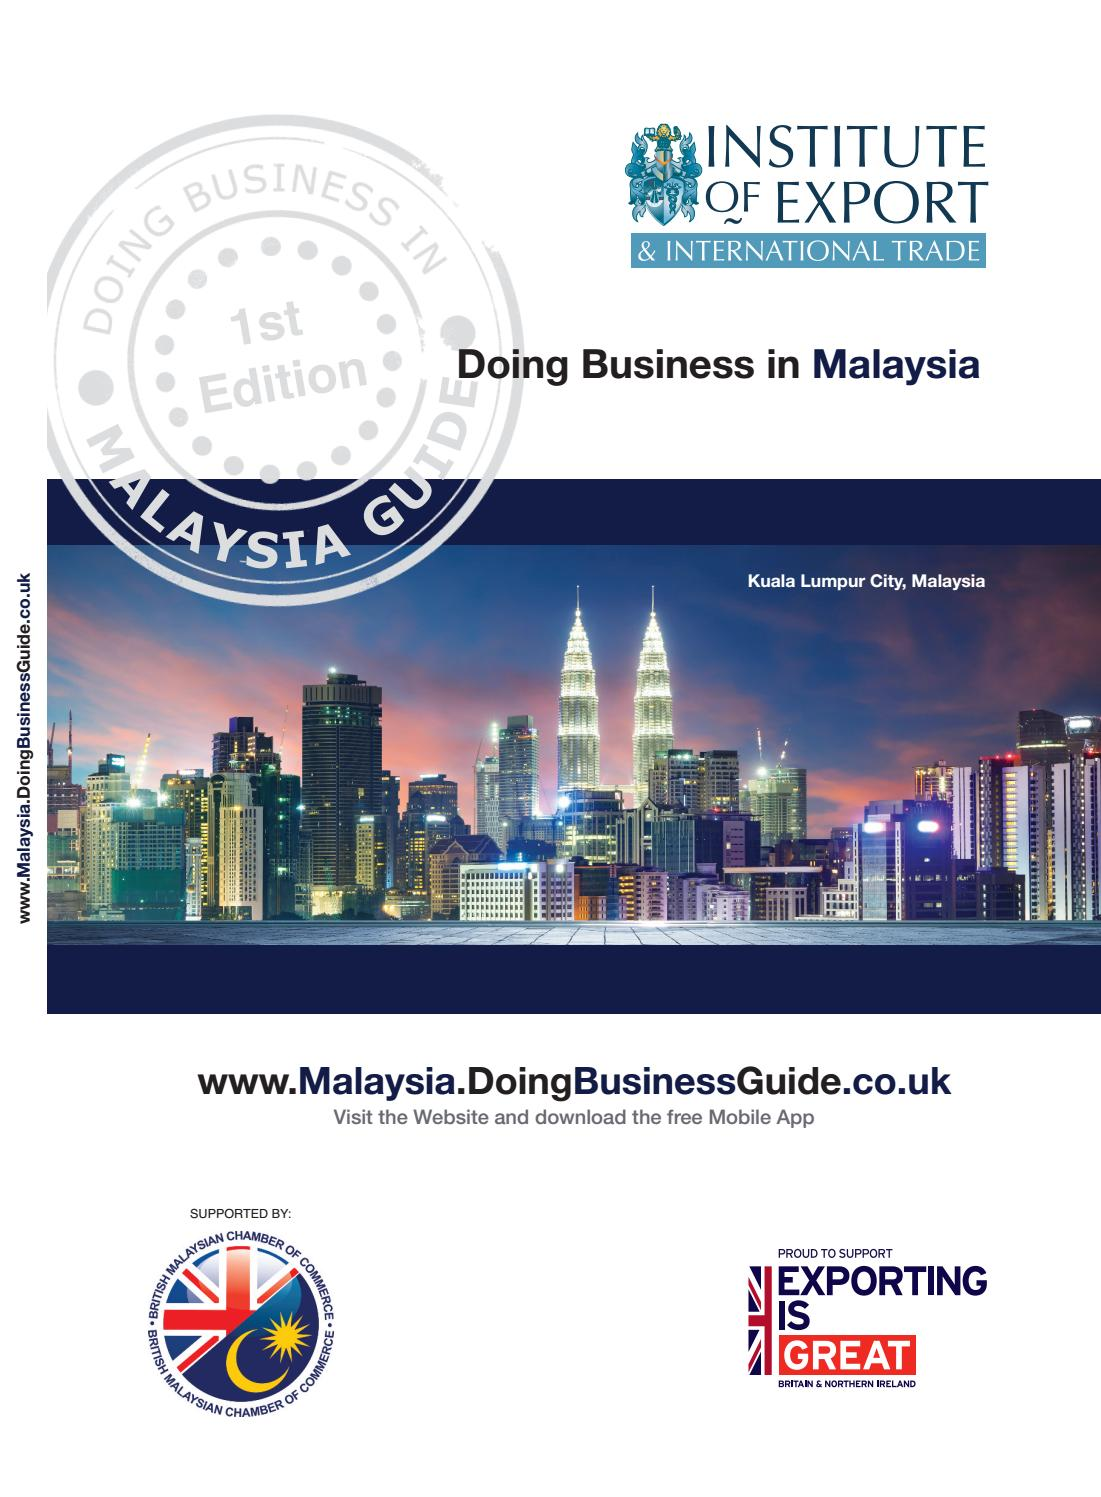 Idea kong officefinder Officefinder Wonderful Pinterest Doing Business In Malaysia Guide By Doing Business Guides Issuu